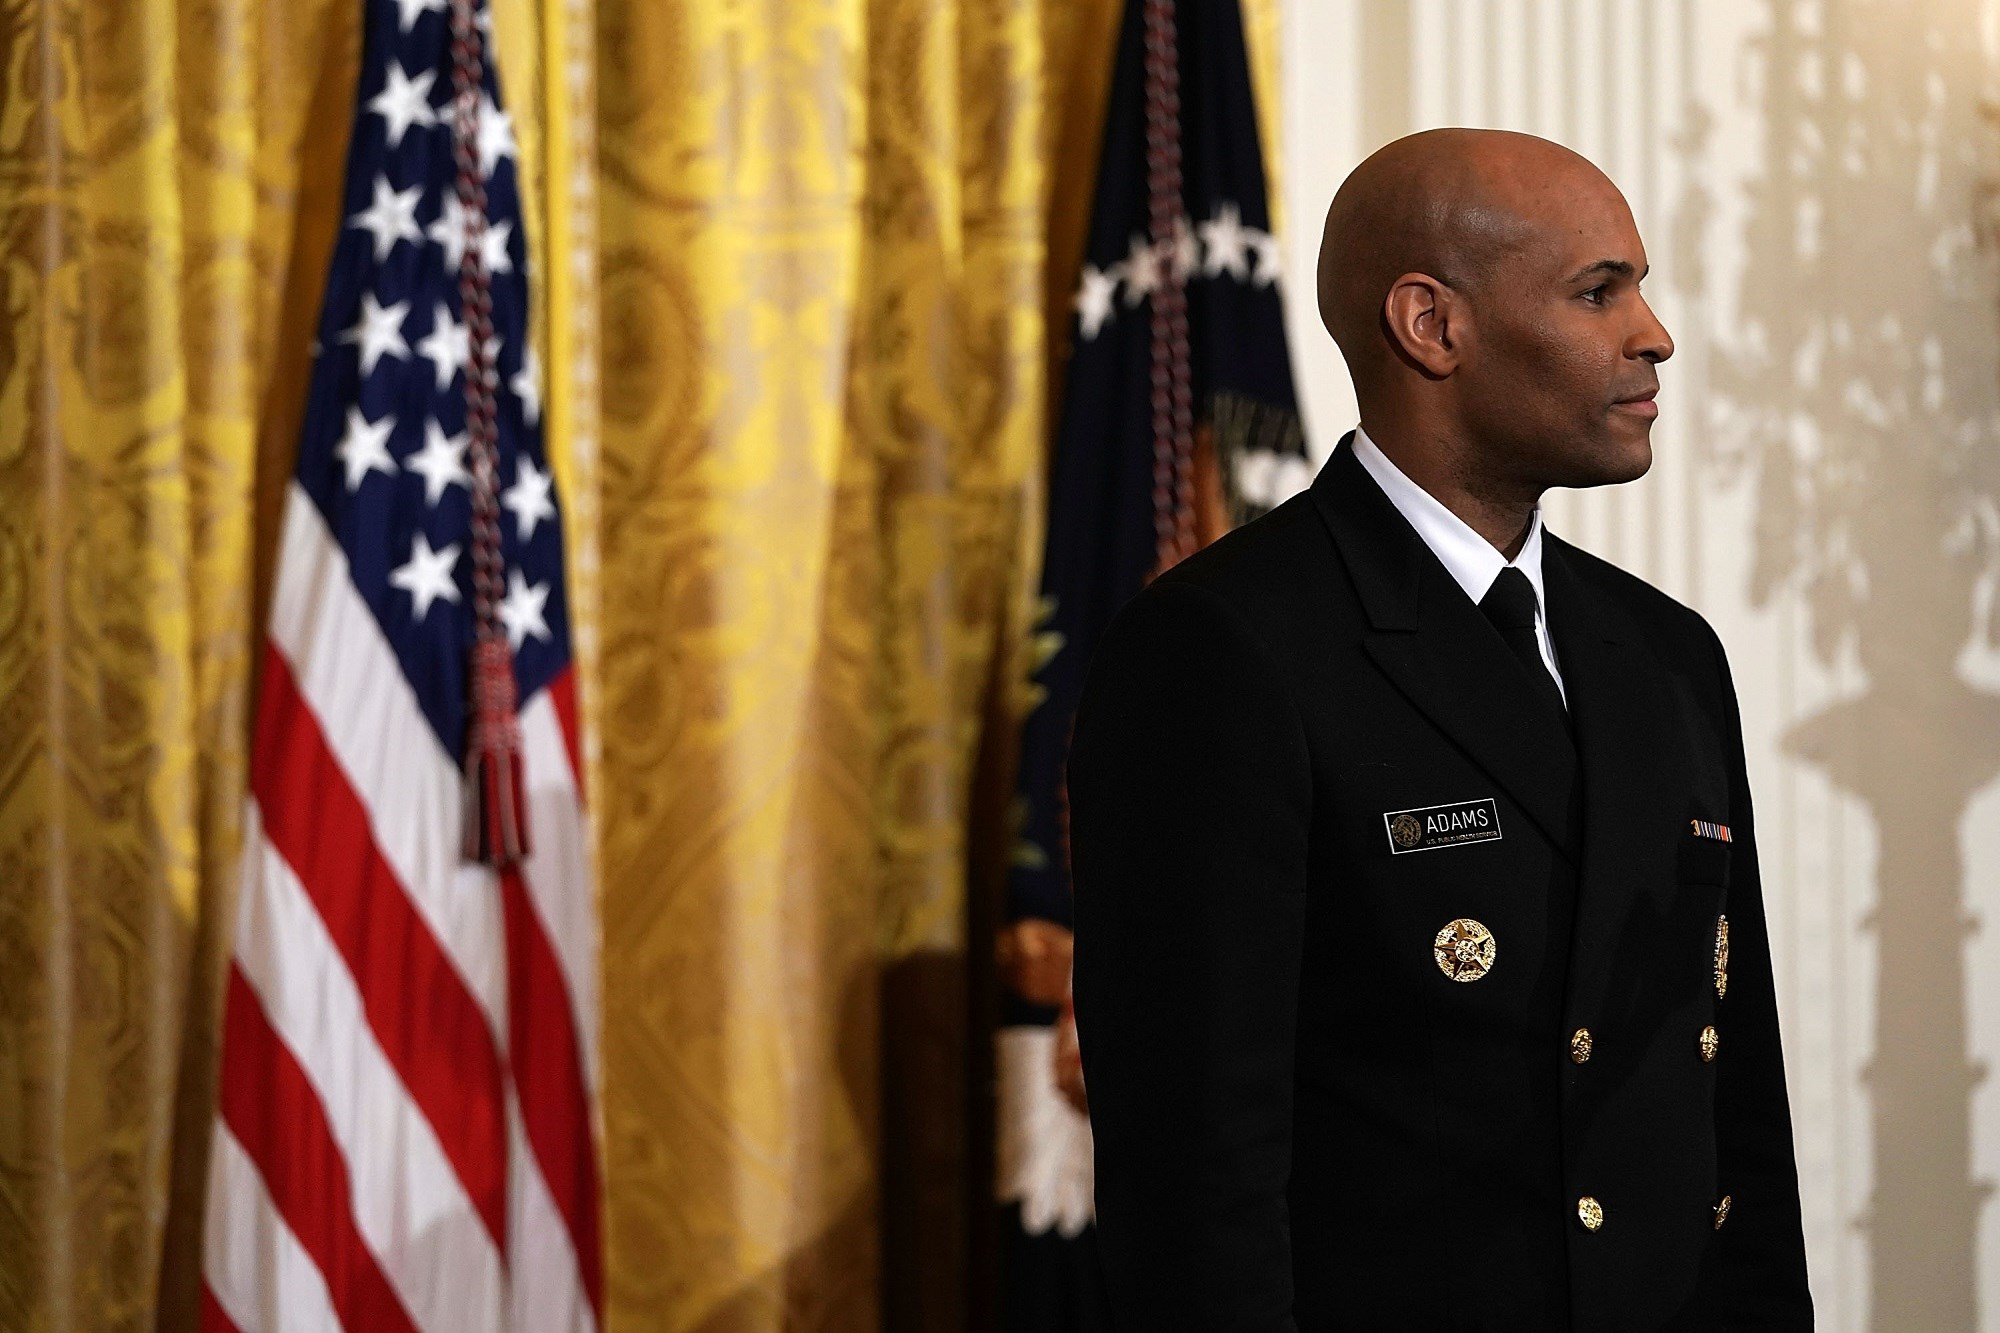 The U.S. Surgeon General released an advisory urging increased availability of the opioid overdose-reversing drug naloxone earlier this year.